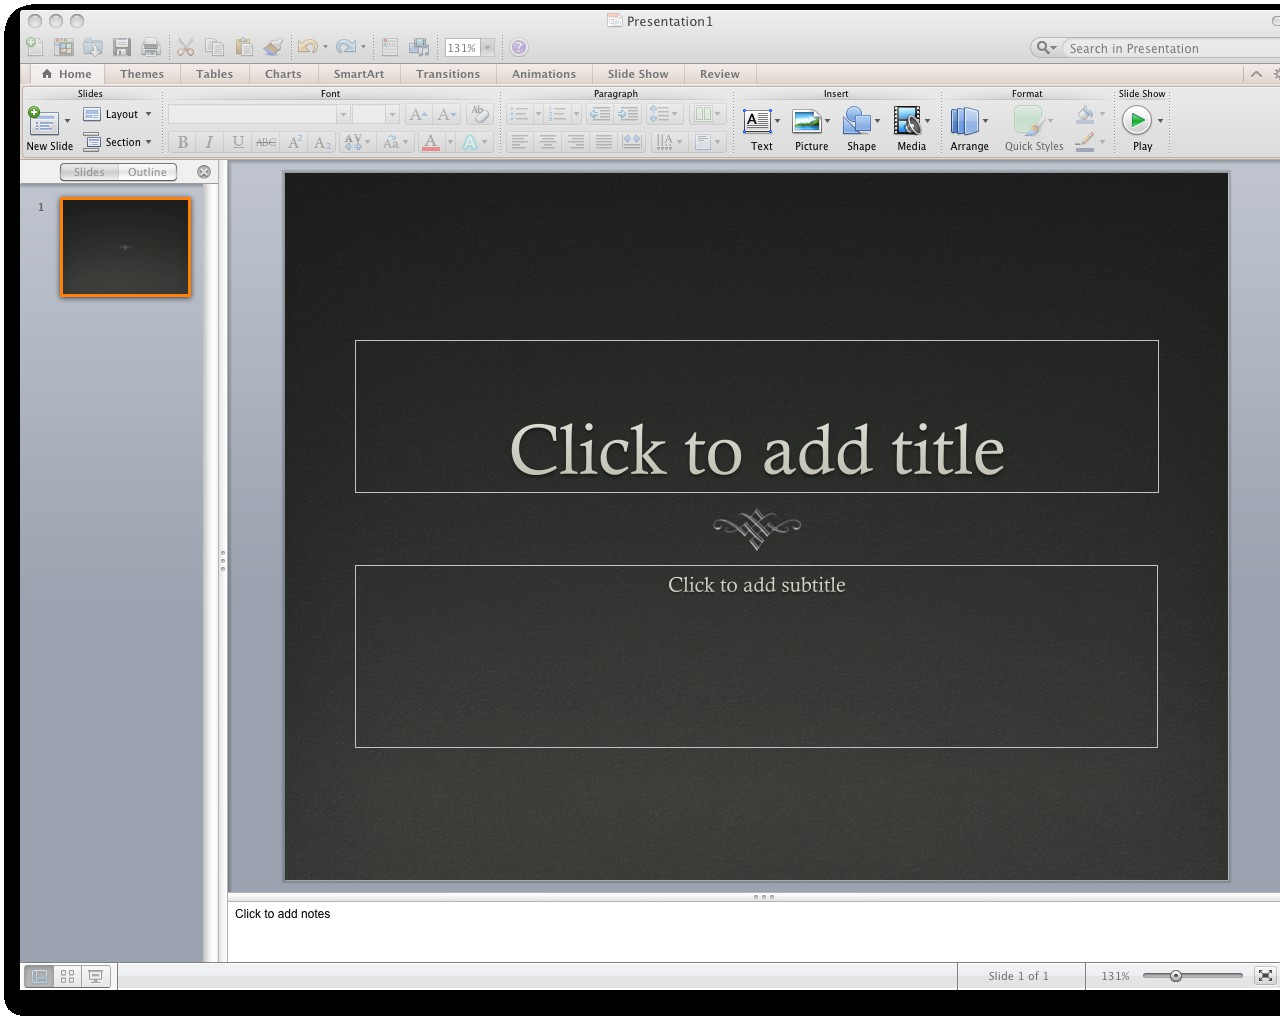 Office 2011: Mac-Version mit Outlook, aber ohne Opendocument - Powerpoint 2011